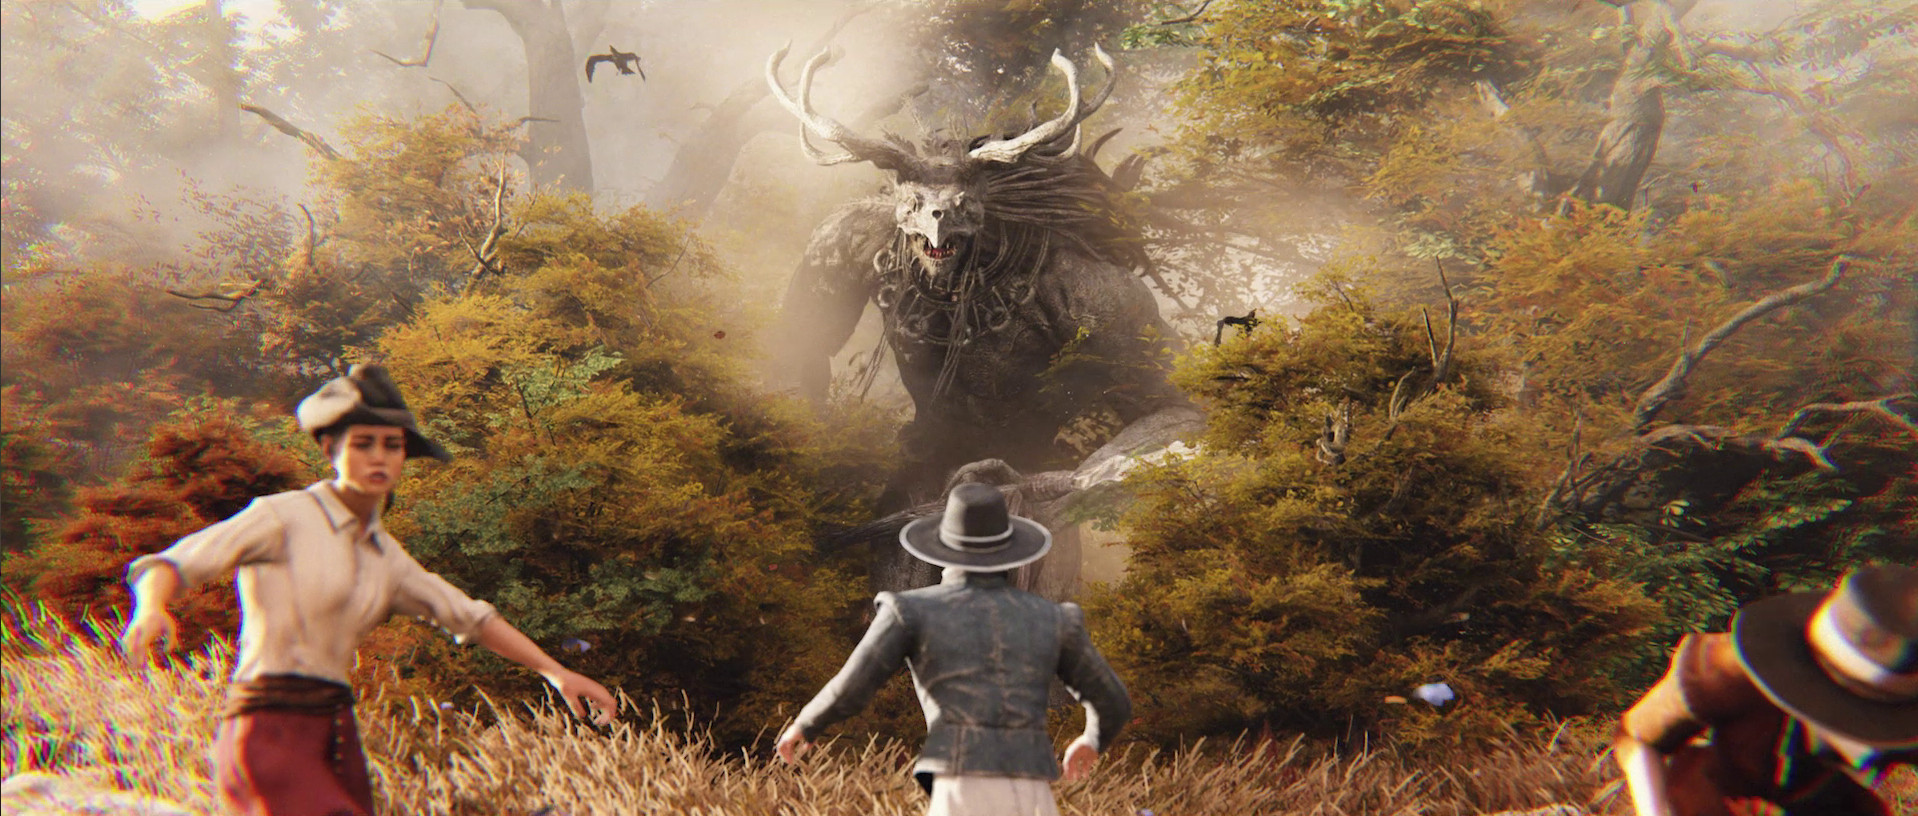 greed-fall-rpg-by-spiders-5-lechen-in-the-woods